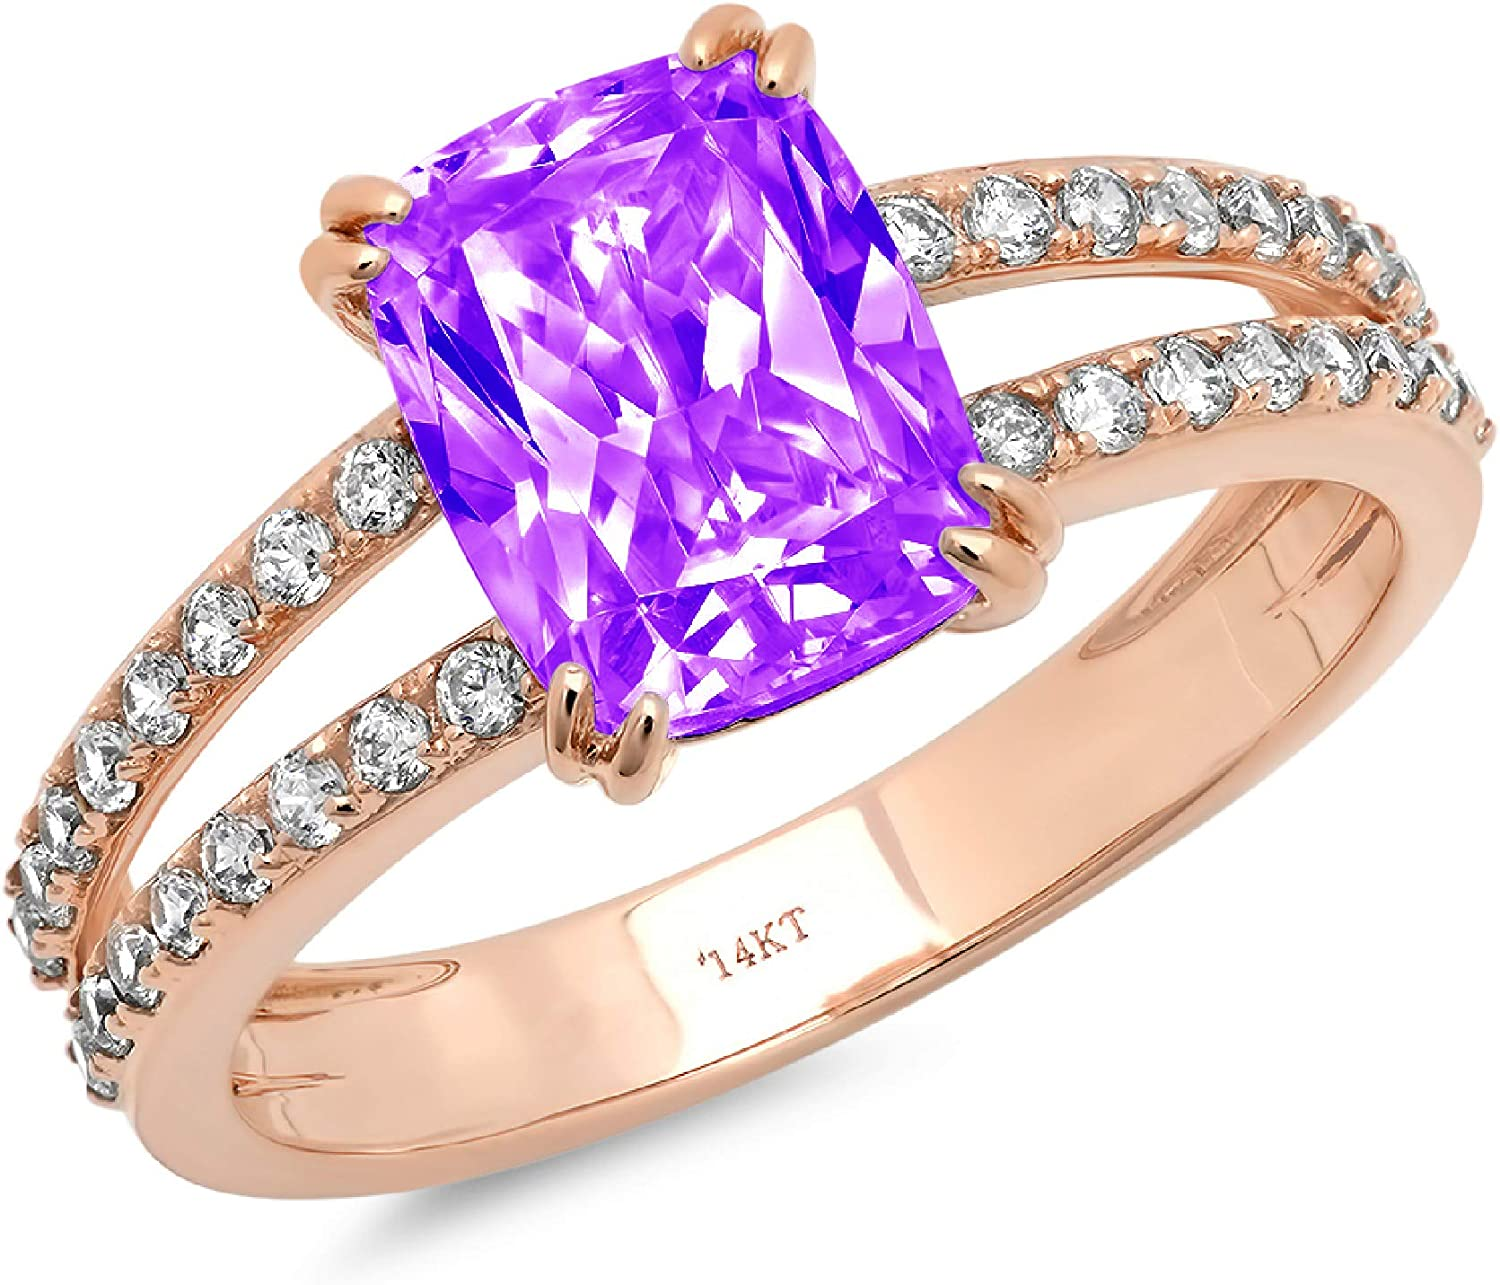 3.47ct Brilliant Cushion Cut Solitaire with accent Natural Purple Amethyst Gem Stone VVS1 Designer Modern Statement Accent Ring Solid 14k Rose Gold Clara Pucci